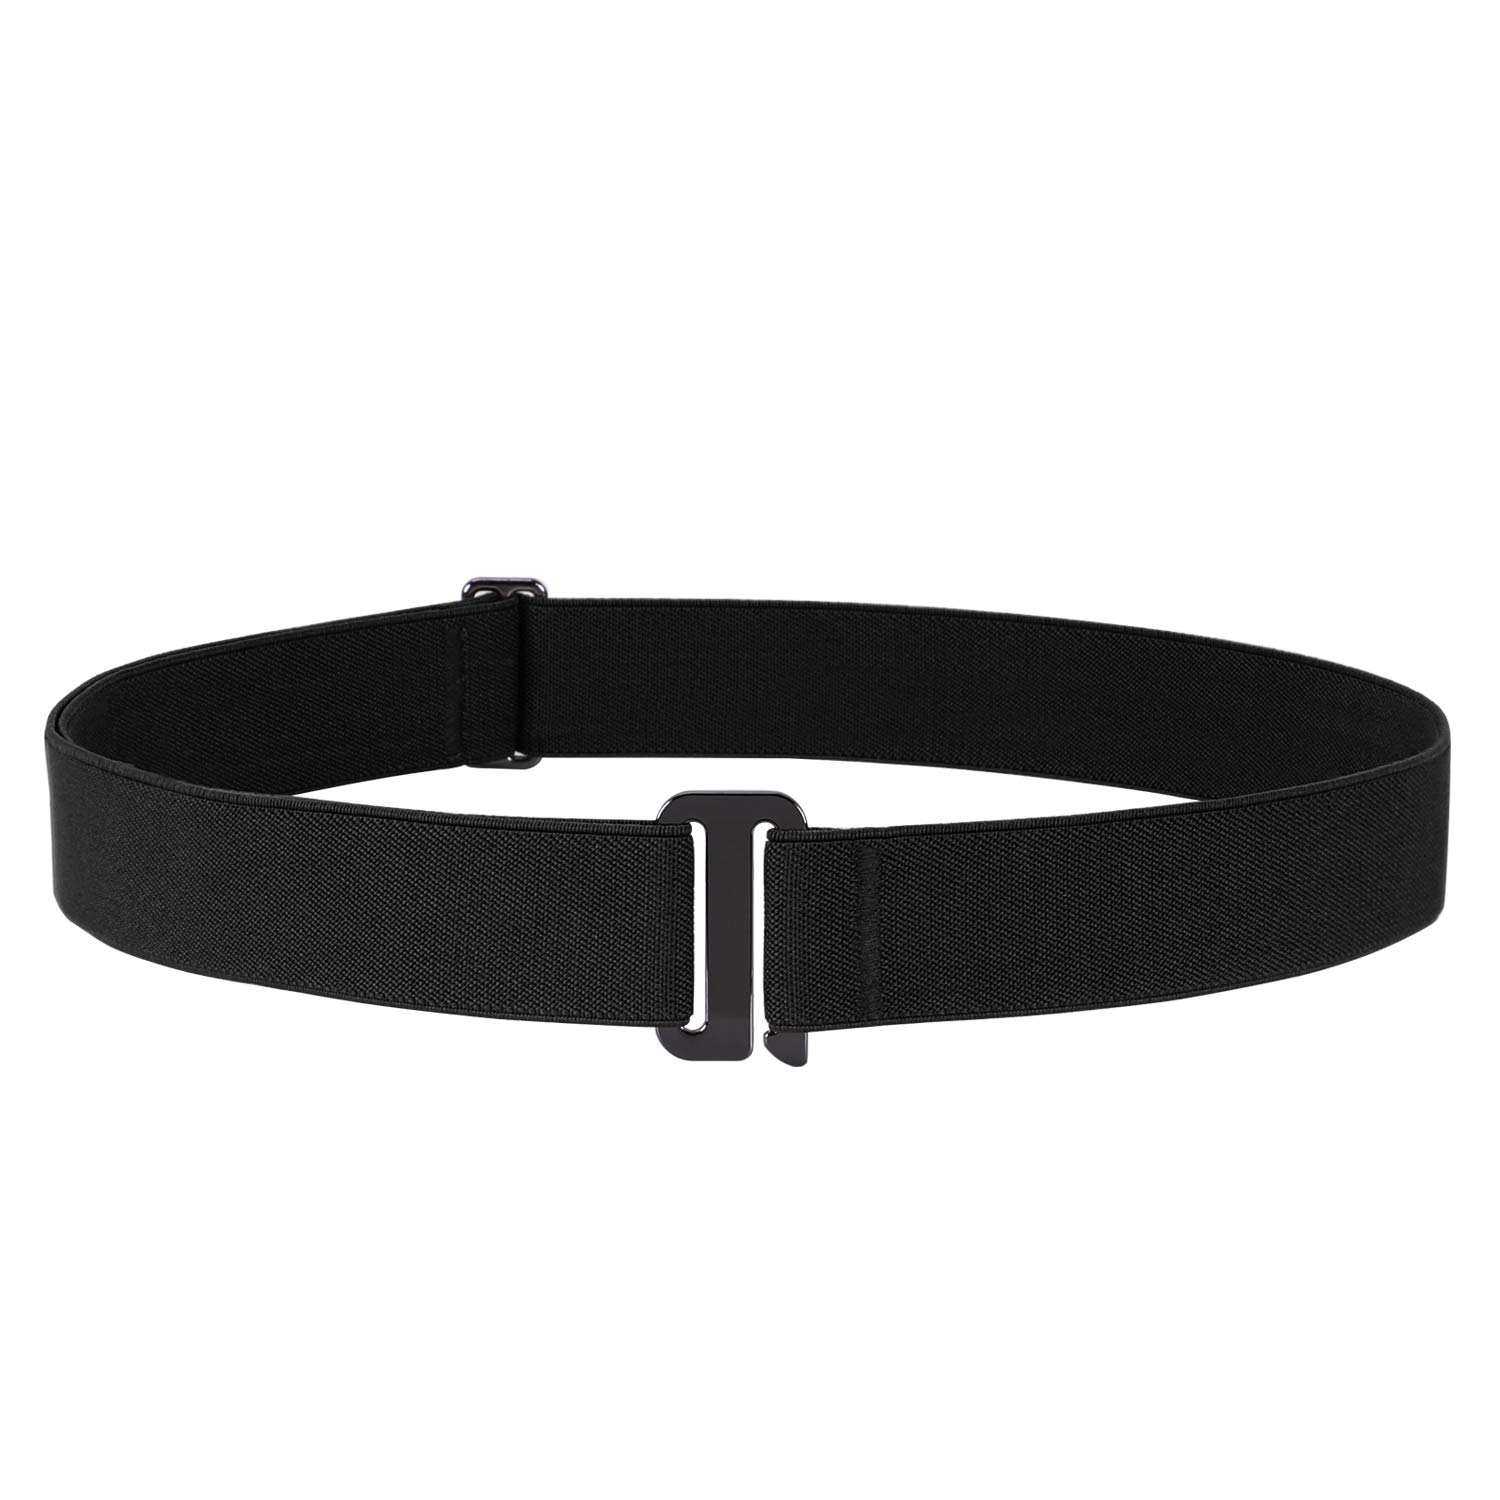 "No Show Stretch Men Belt Invisible Elastic Web Belt with Flat Buckle 1.38"" Wide"